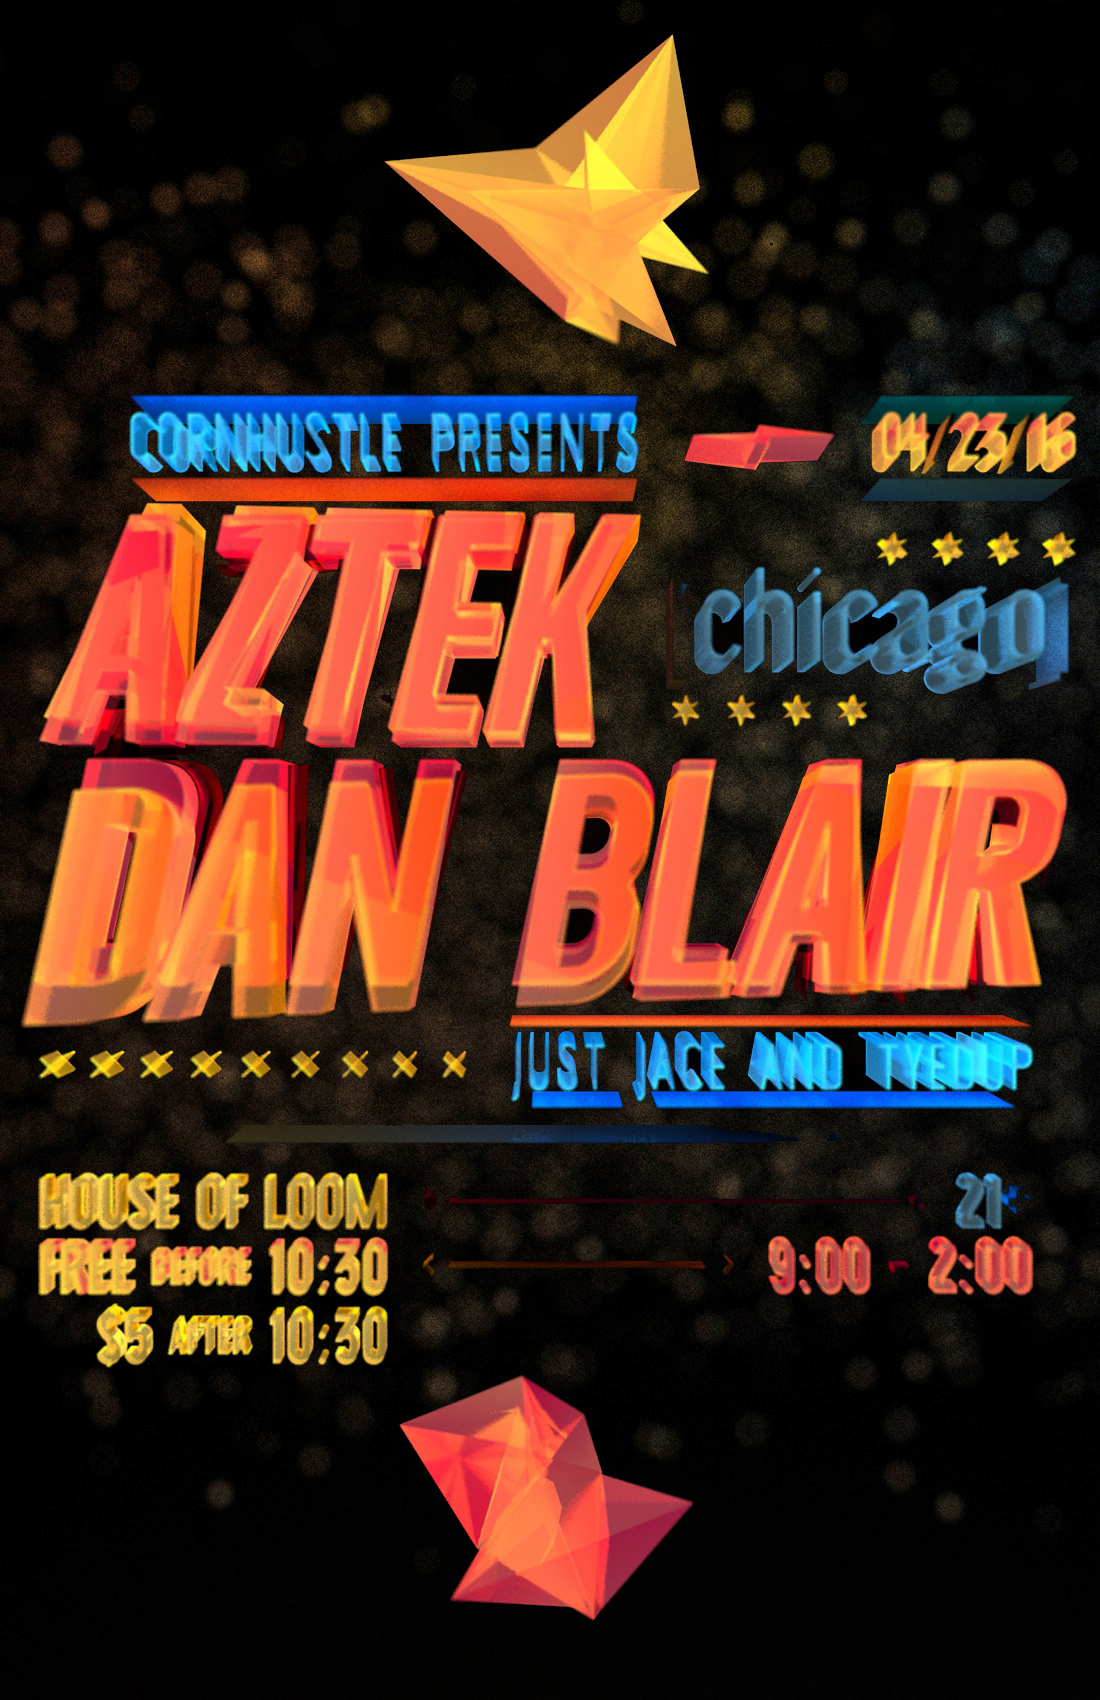 _Aztek Dan Blair 11x17 - UPDATED.jpg